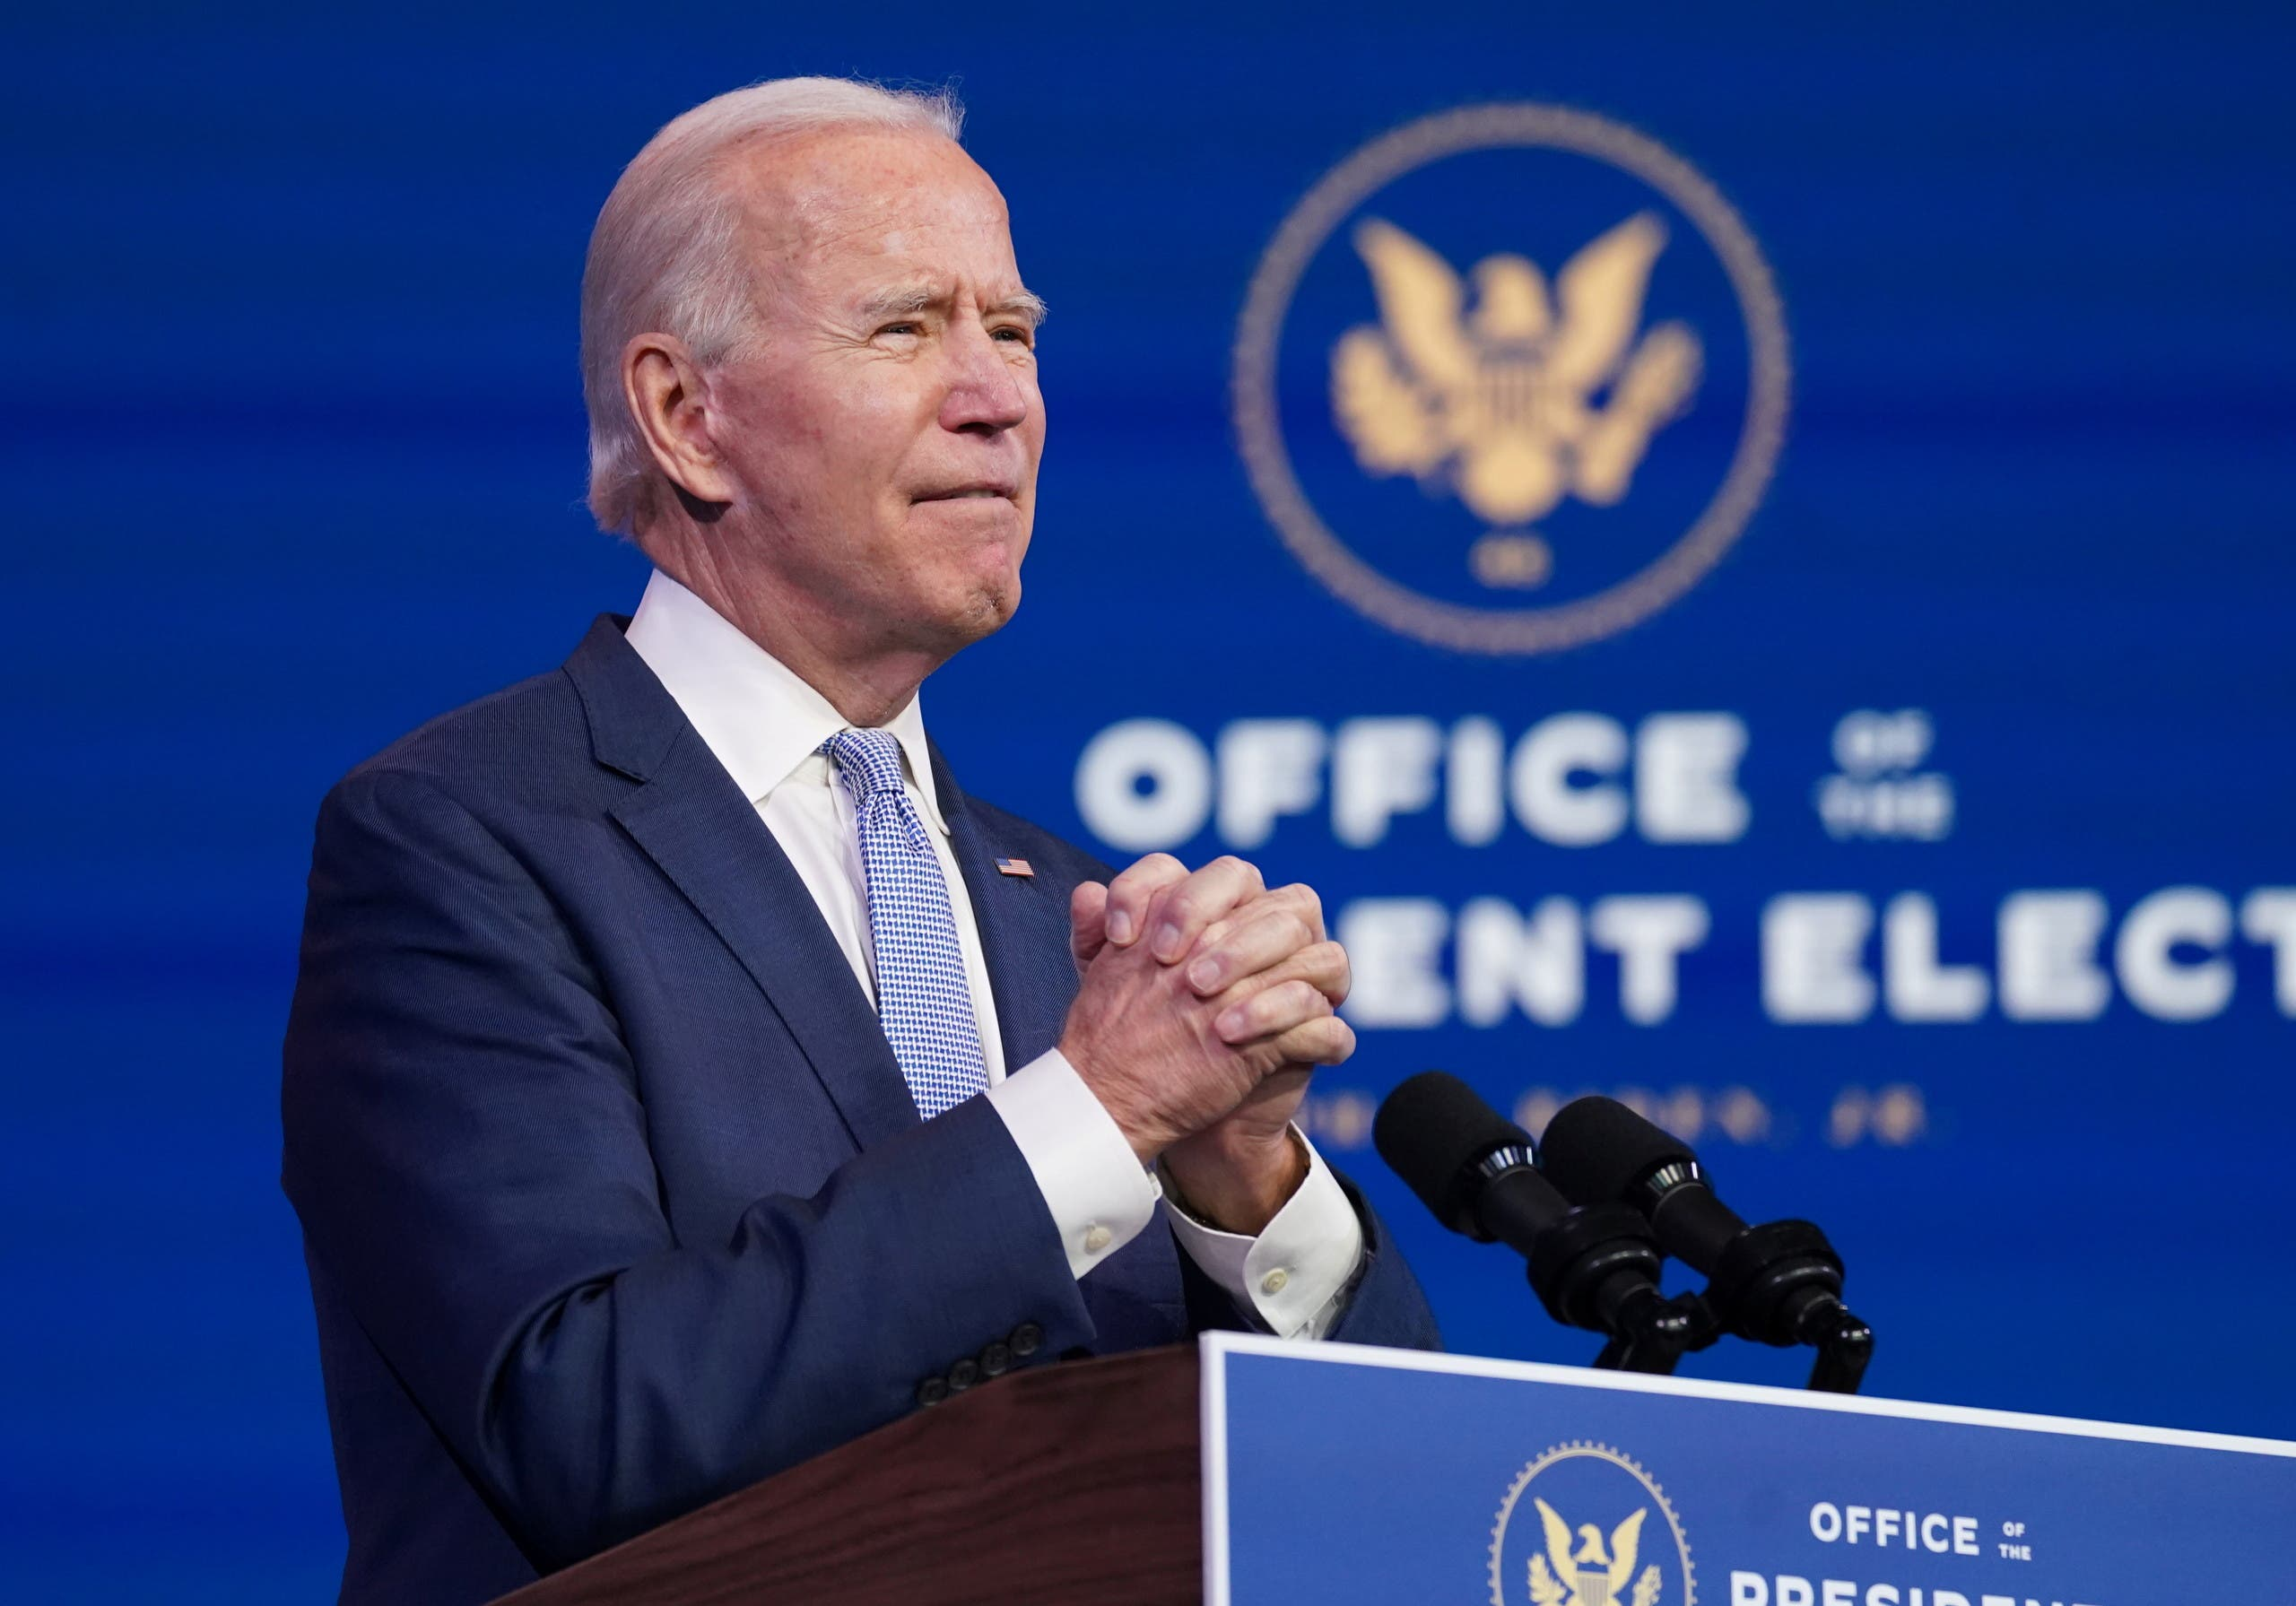 U.S. President-elect Joe Biden addresses the protests taking place in and around the U.S. Capitol in Washington as the U.S. Congress held a joint session to certify the 2020 election results, at a news conference at his transition headquarters in Wilmington, Delaware on January 6, 2021. (Reuters)